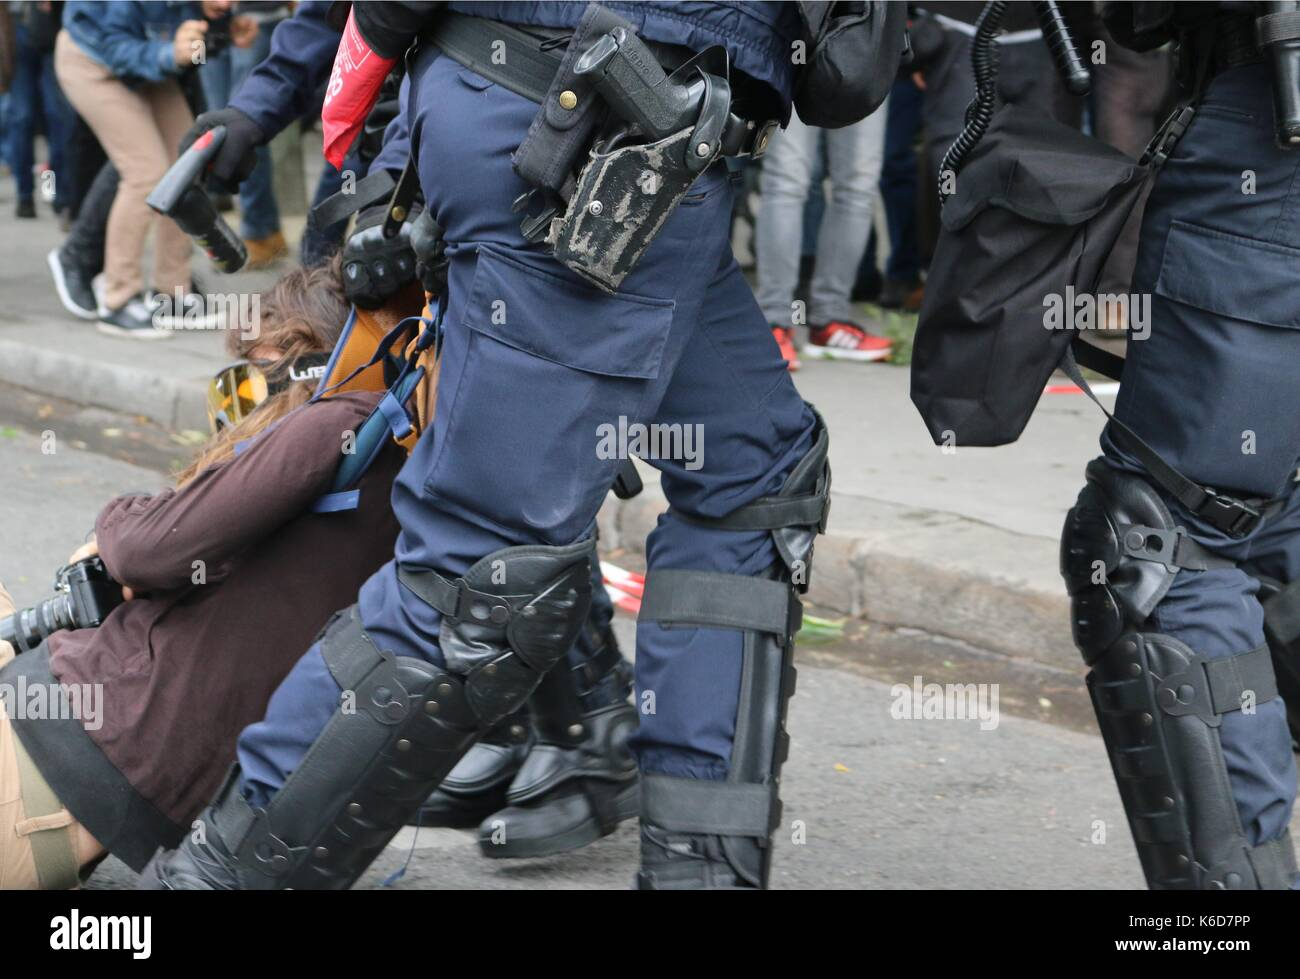 Paris, France. 12th Sep, 2017. A French snatch squad arrest protester after clashes following Loi Travail march in Paris Credit: Conall Kearney/Alamy Live News - Stock Image